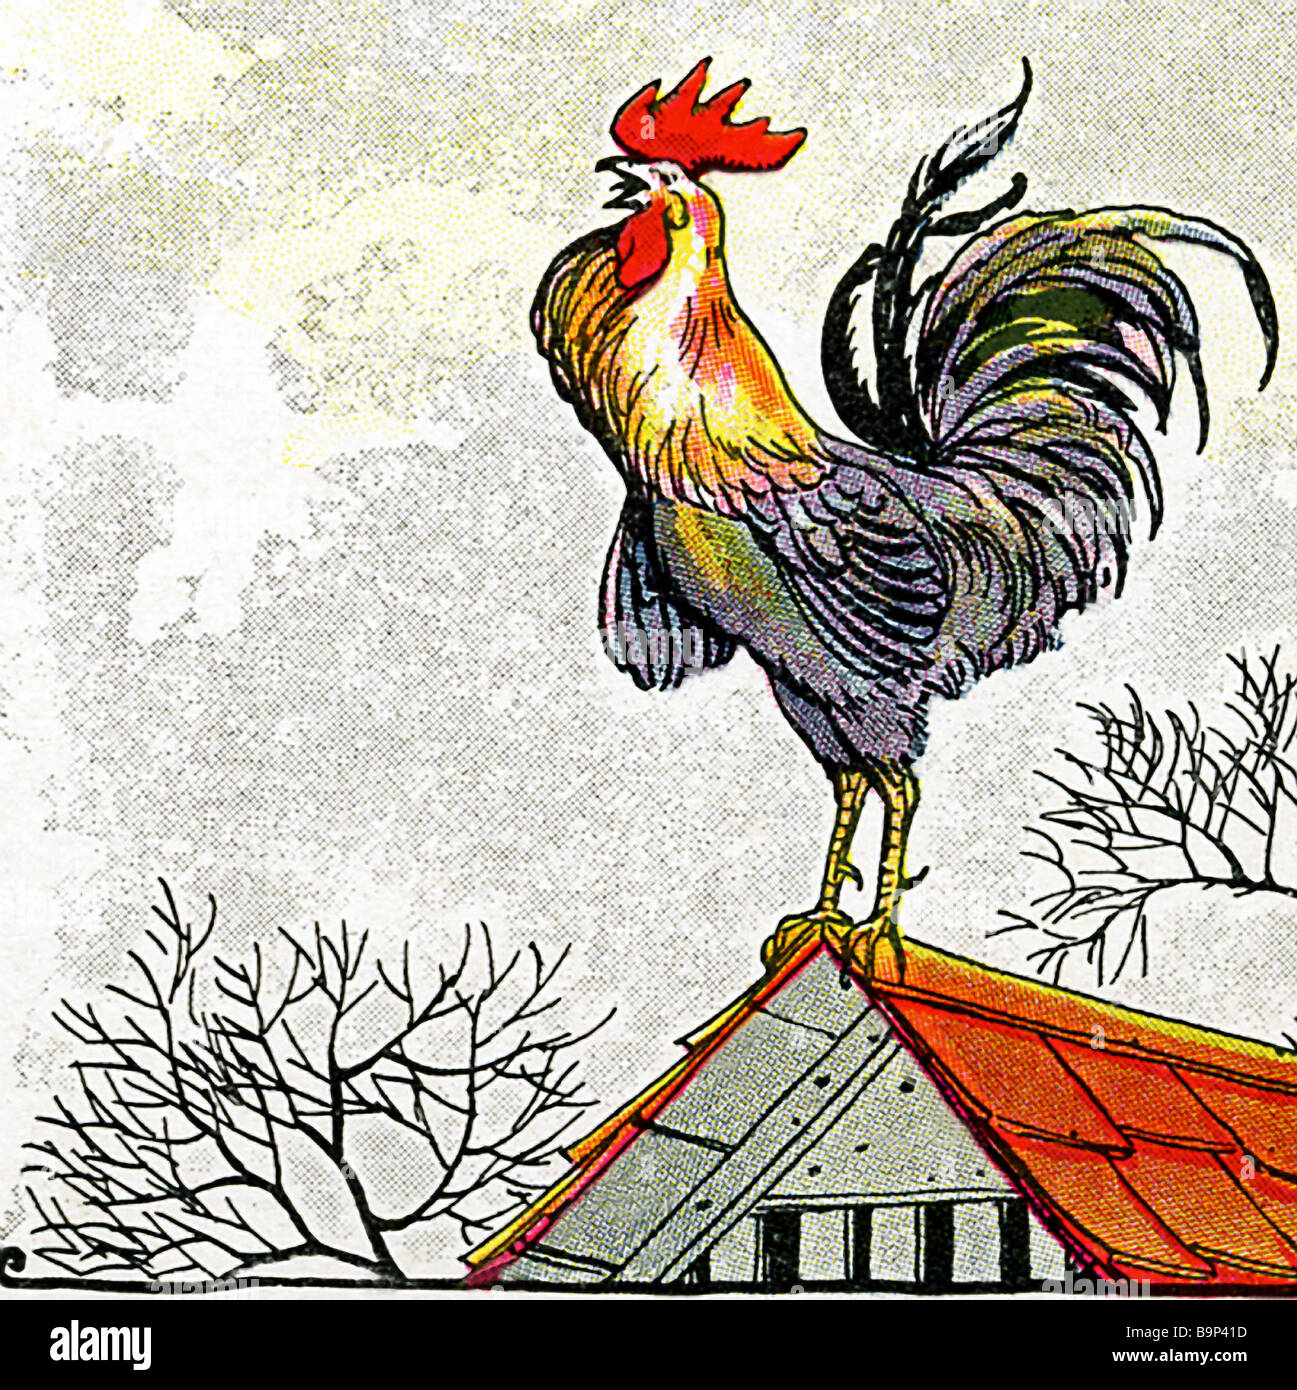 Rooster in Aesop's Fables - Stock Image